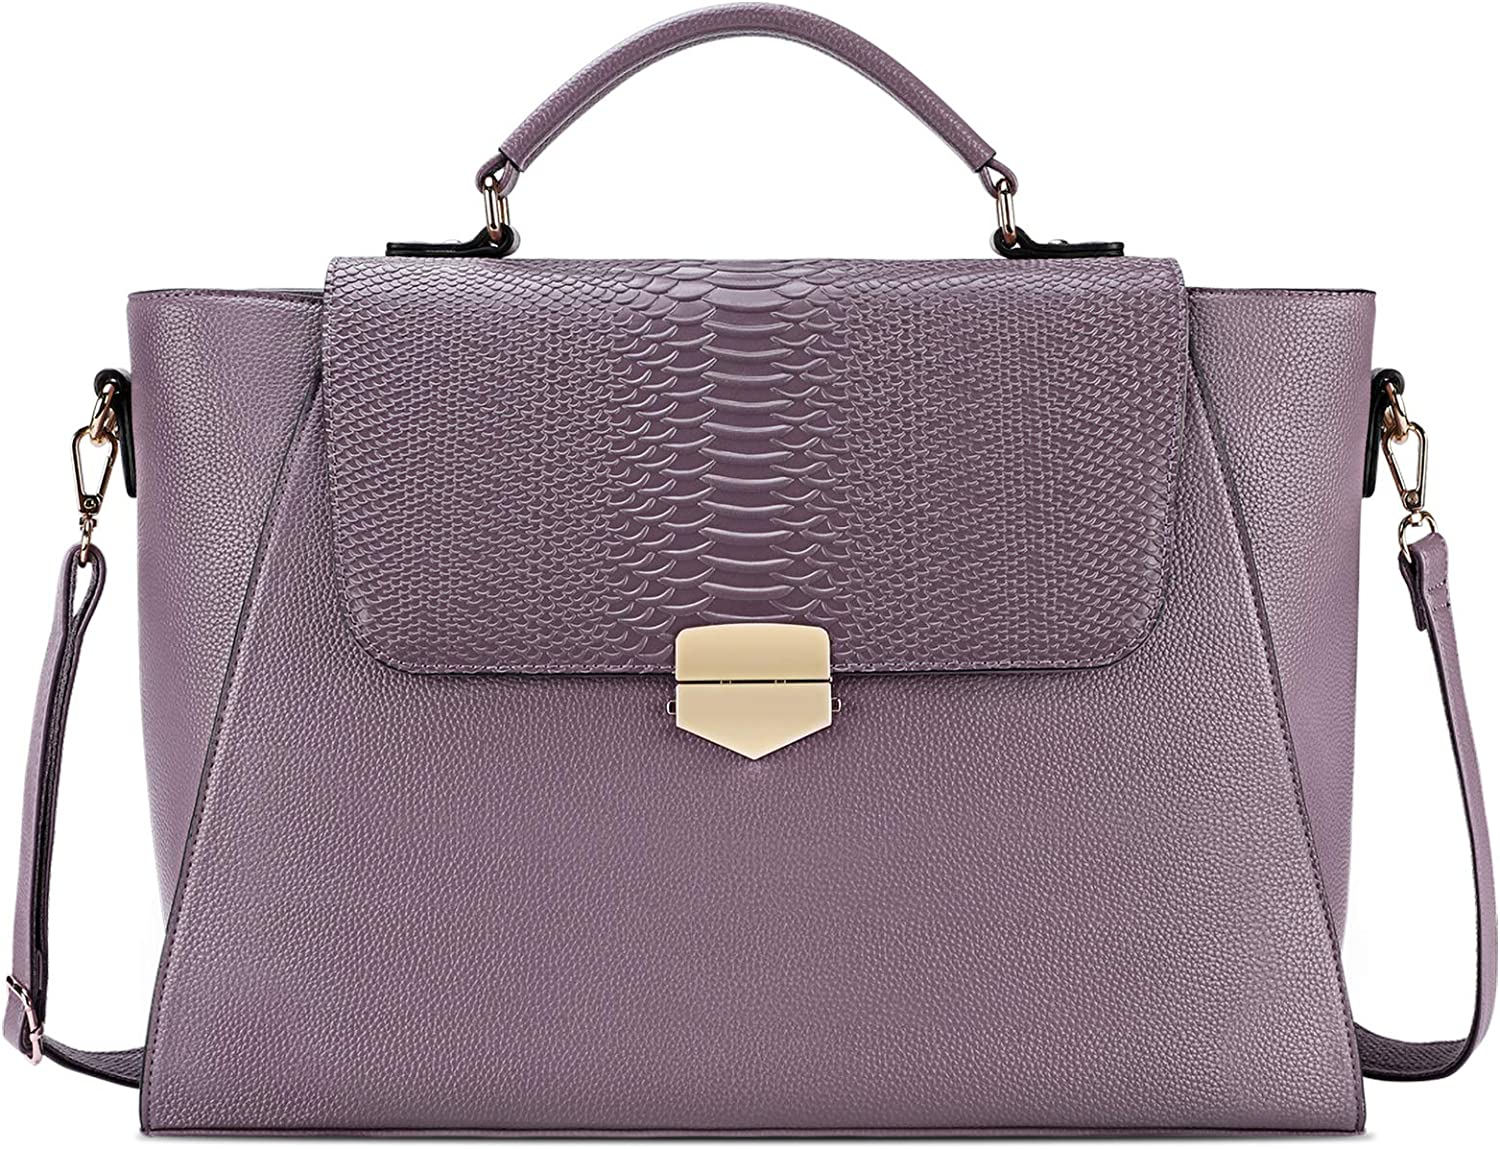 Briefcase for Women 15.6 Laptop Bag Business Messenger Bag Work Tote Bag Professional Shoulder Purse with Padded Compartment for Tablet Notebook Ultrabook Purple